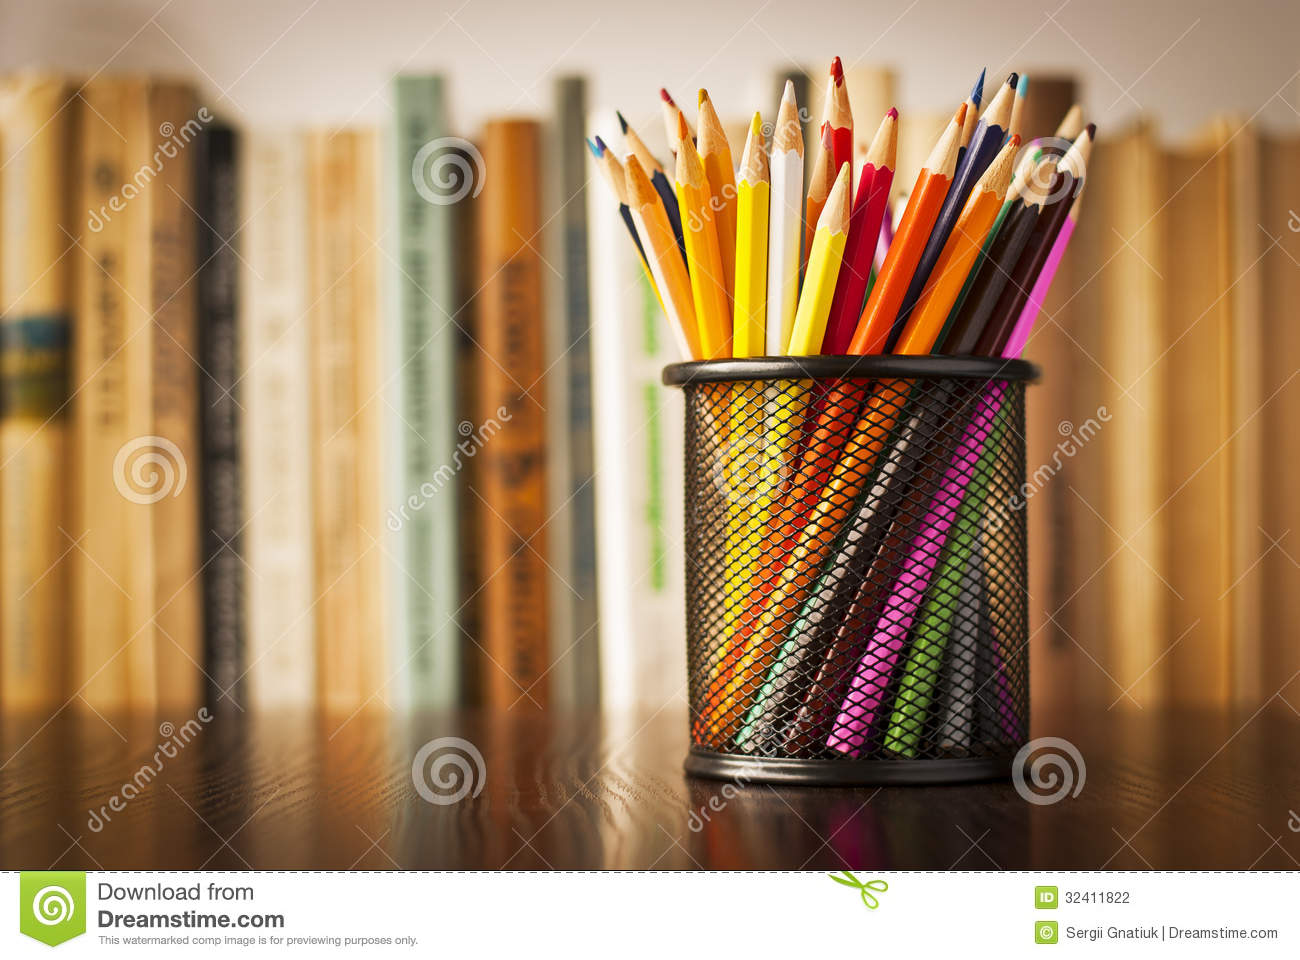 ... wooden table in front of a bookshelf full of books with shallow dof